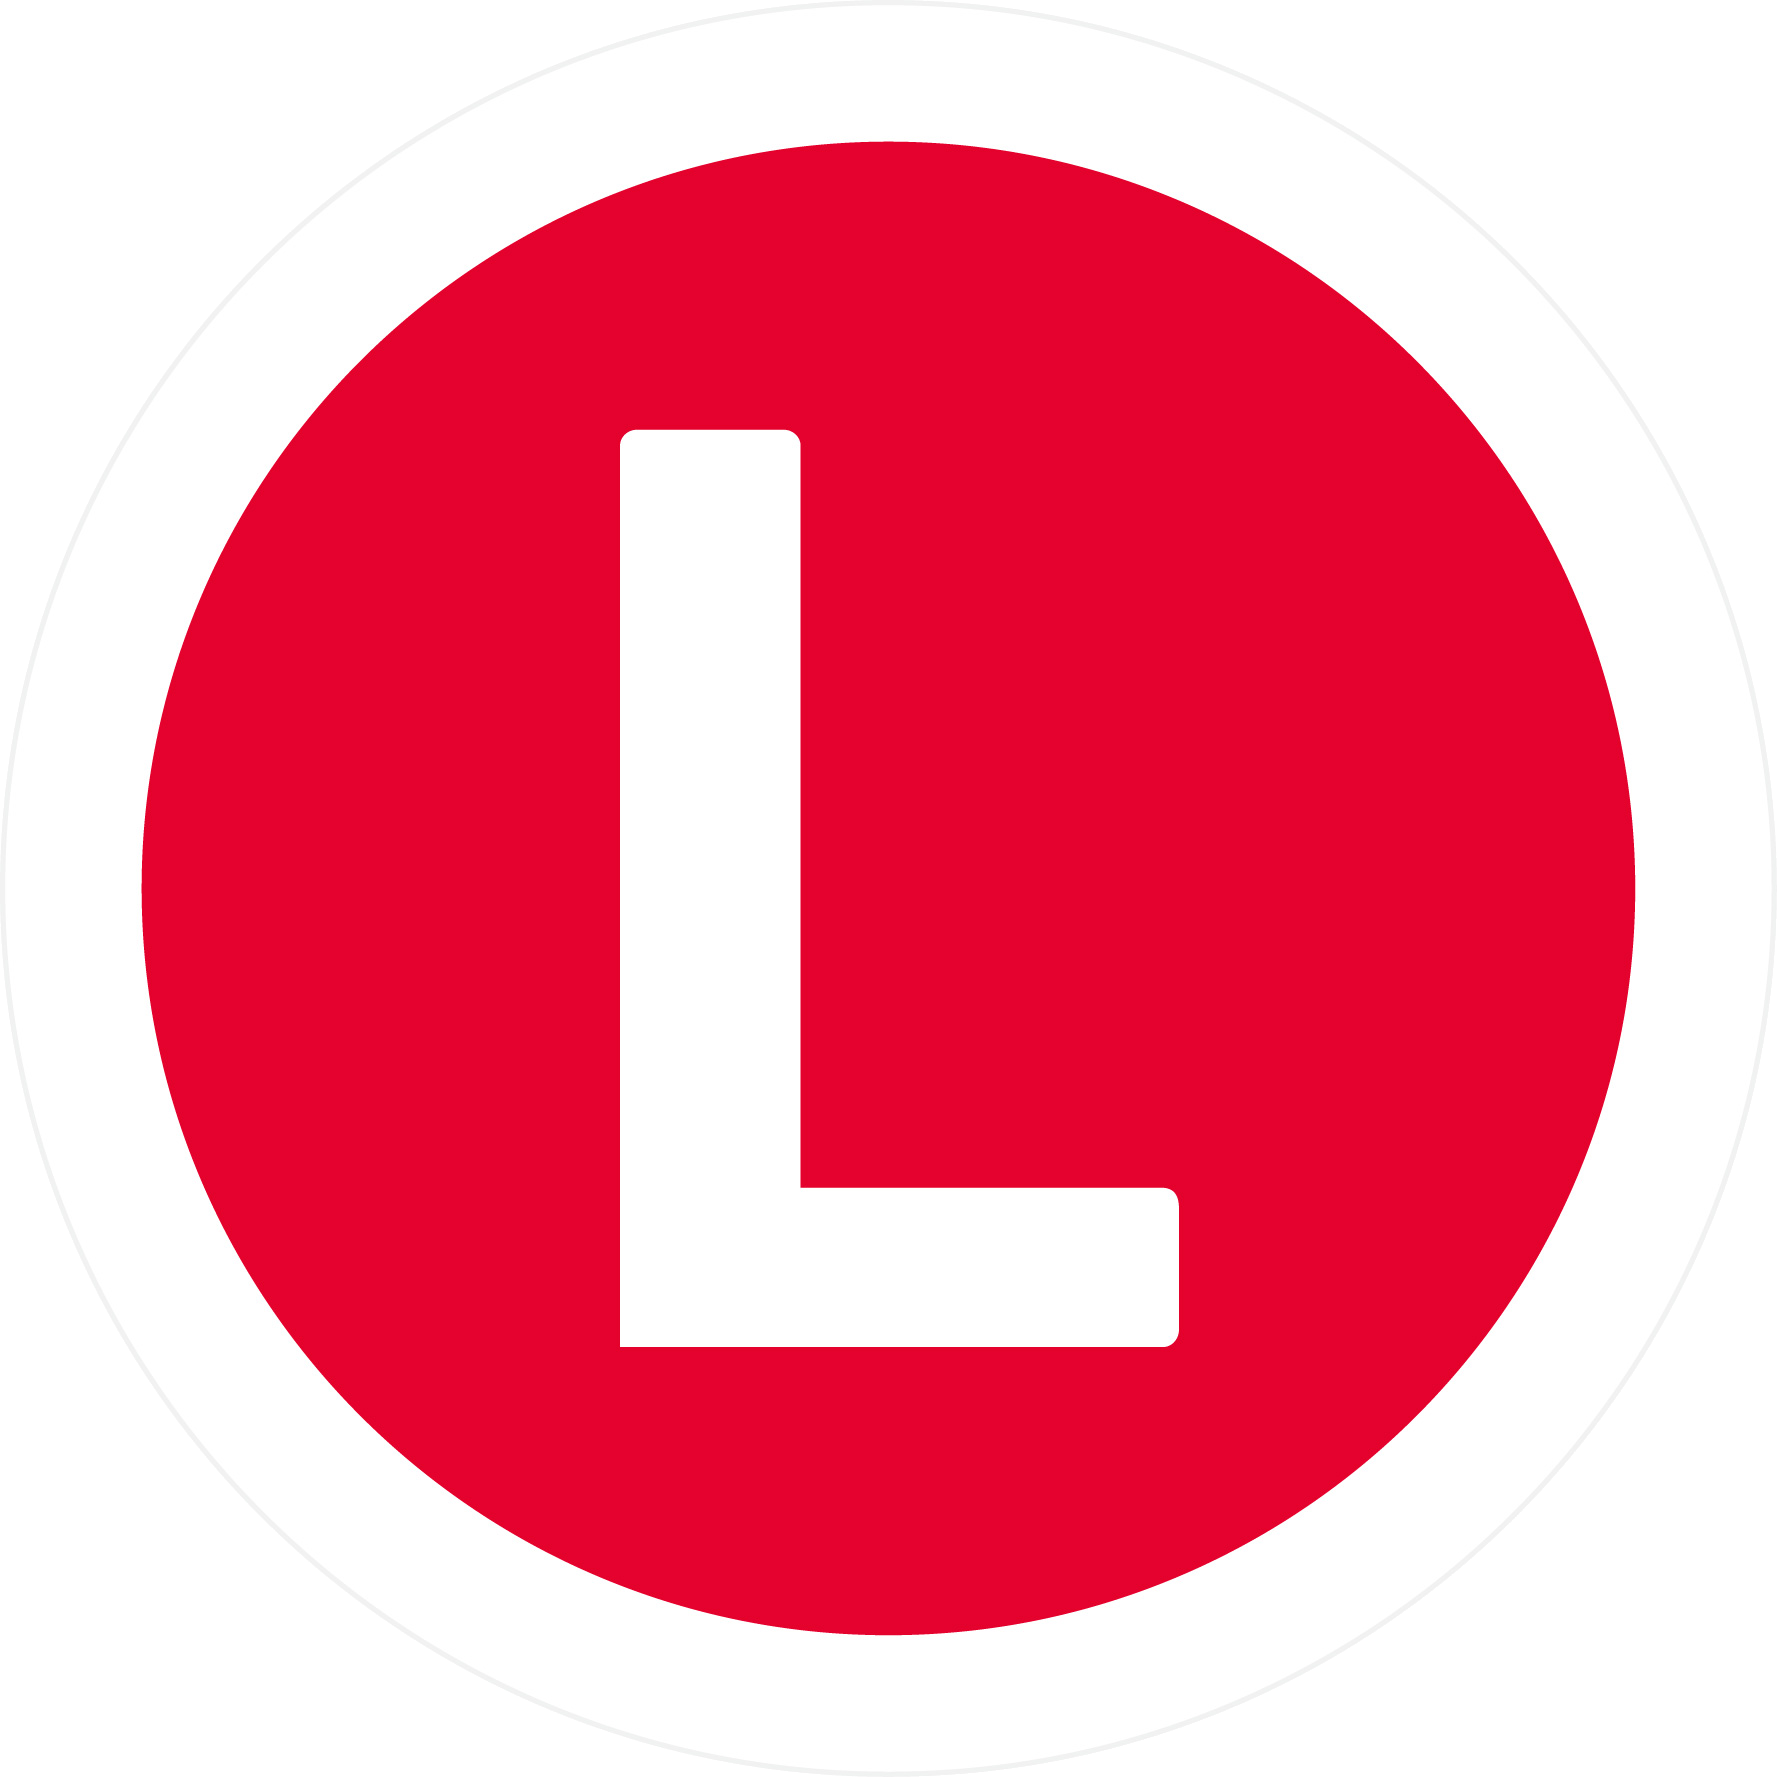 Red l png. File tfnsw wikimedia commons